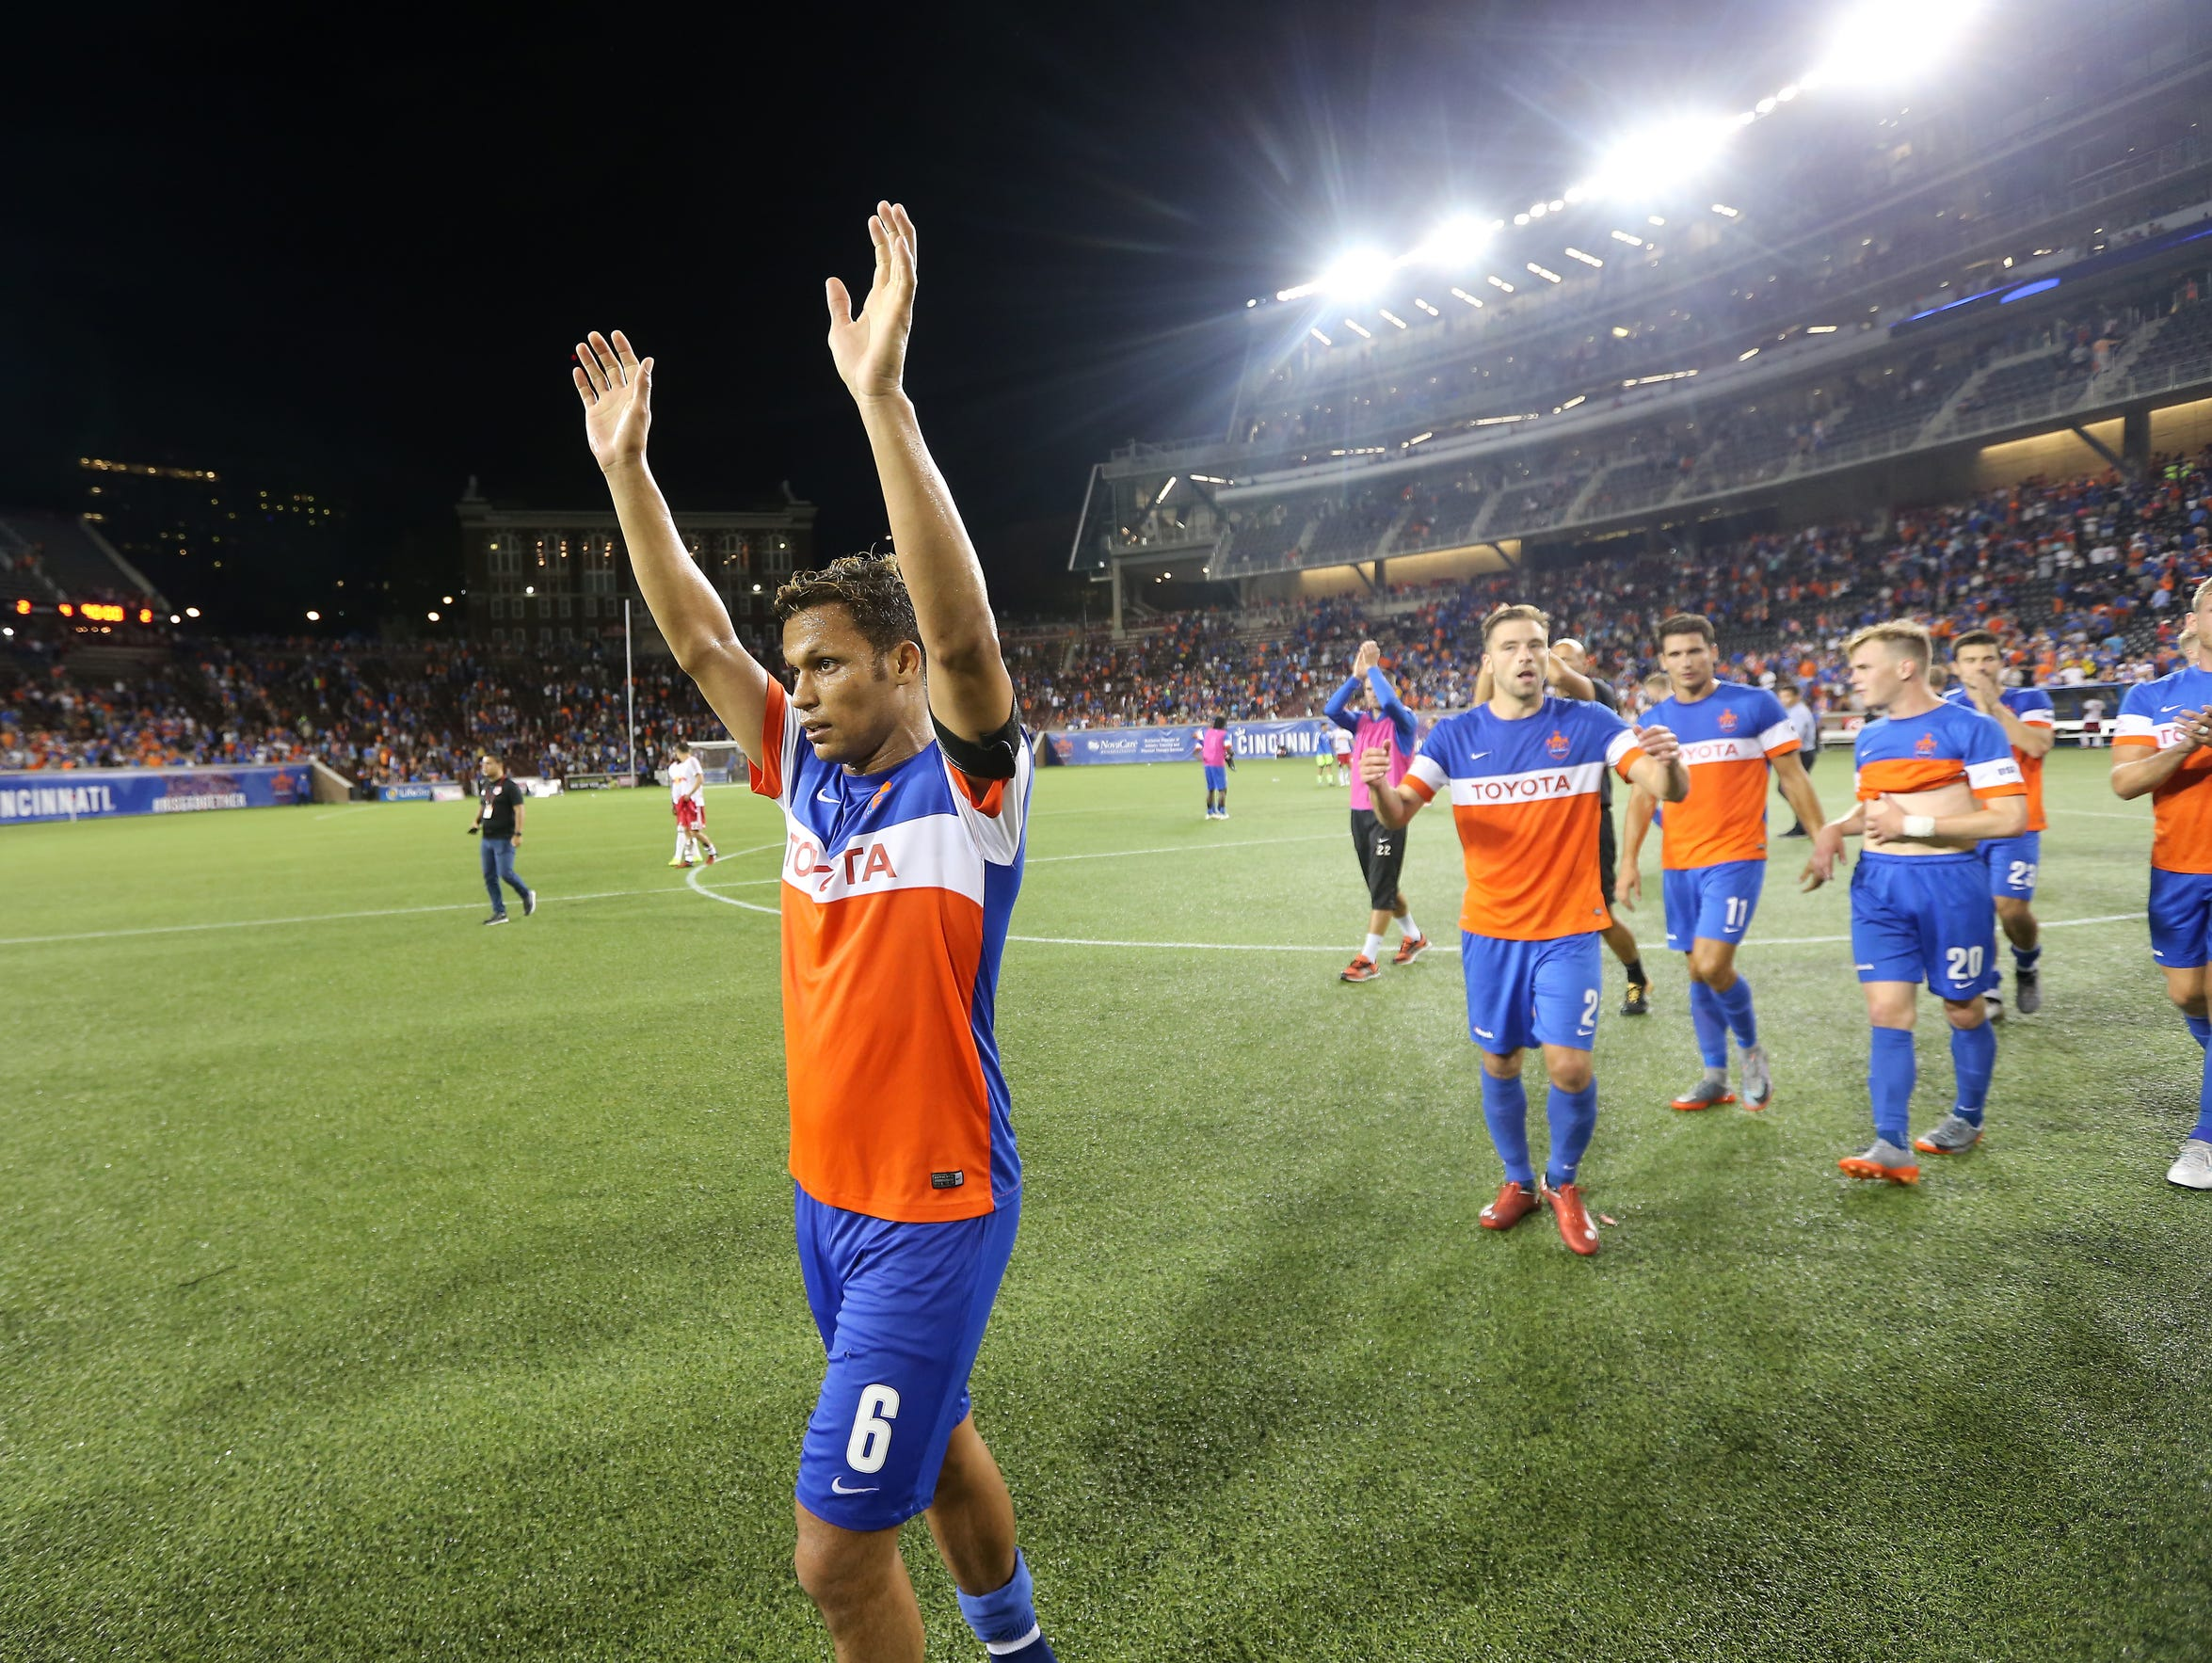 FC Cincinnati has made a strong showing on the field - beating Major League Soccer teams and competing against international squads. And the team has set attendance records for its current league.